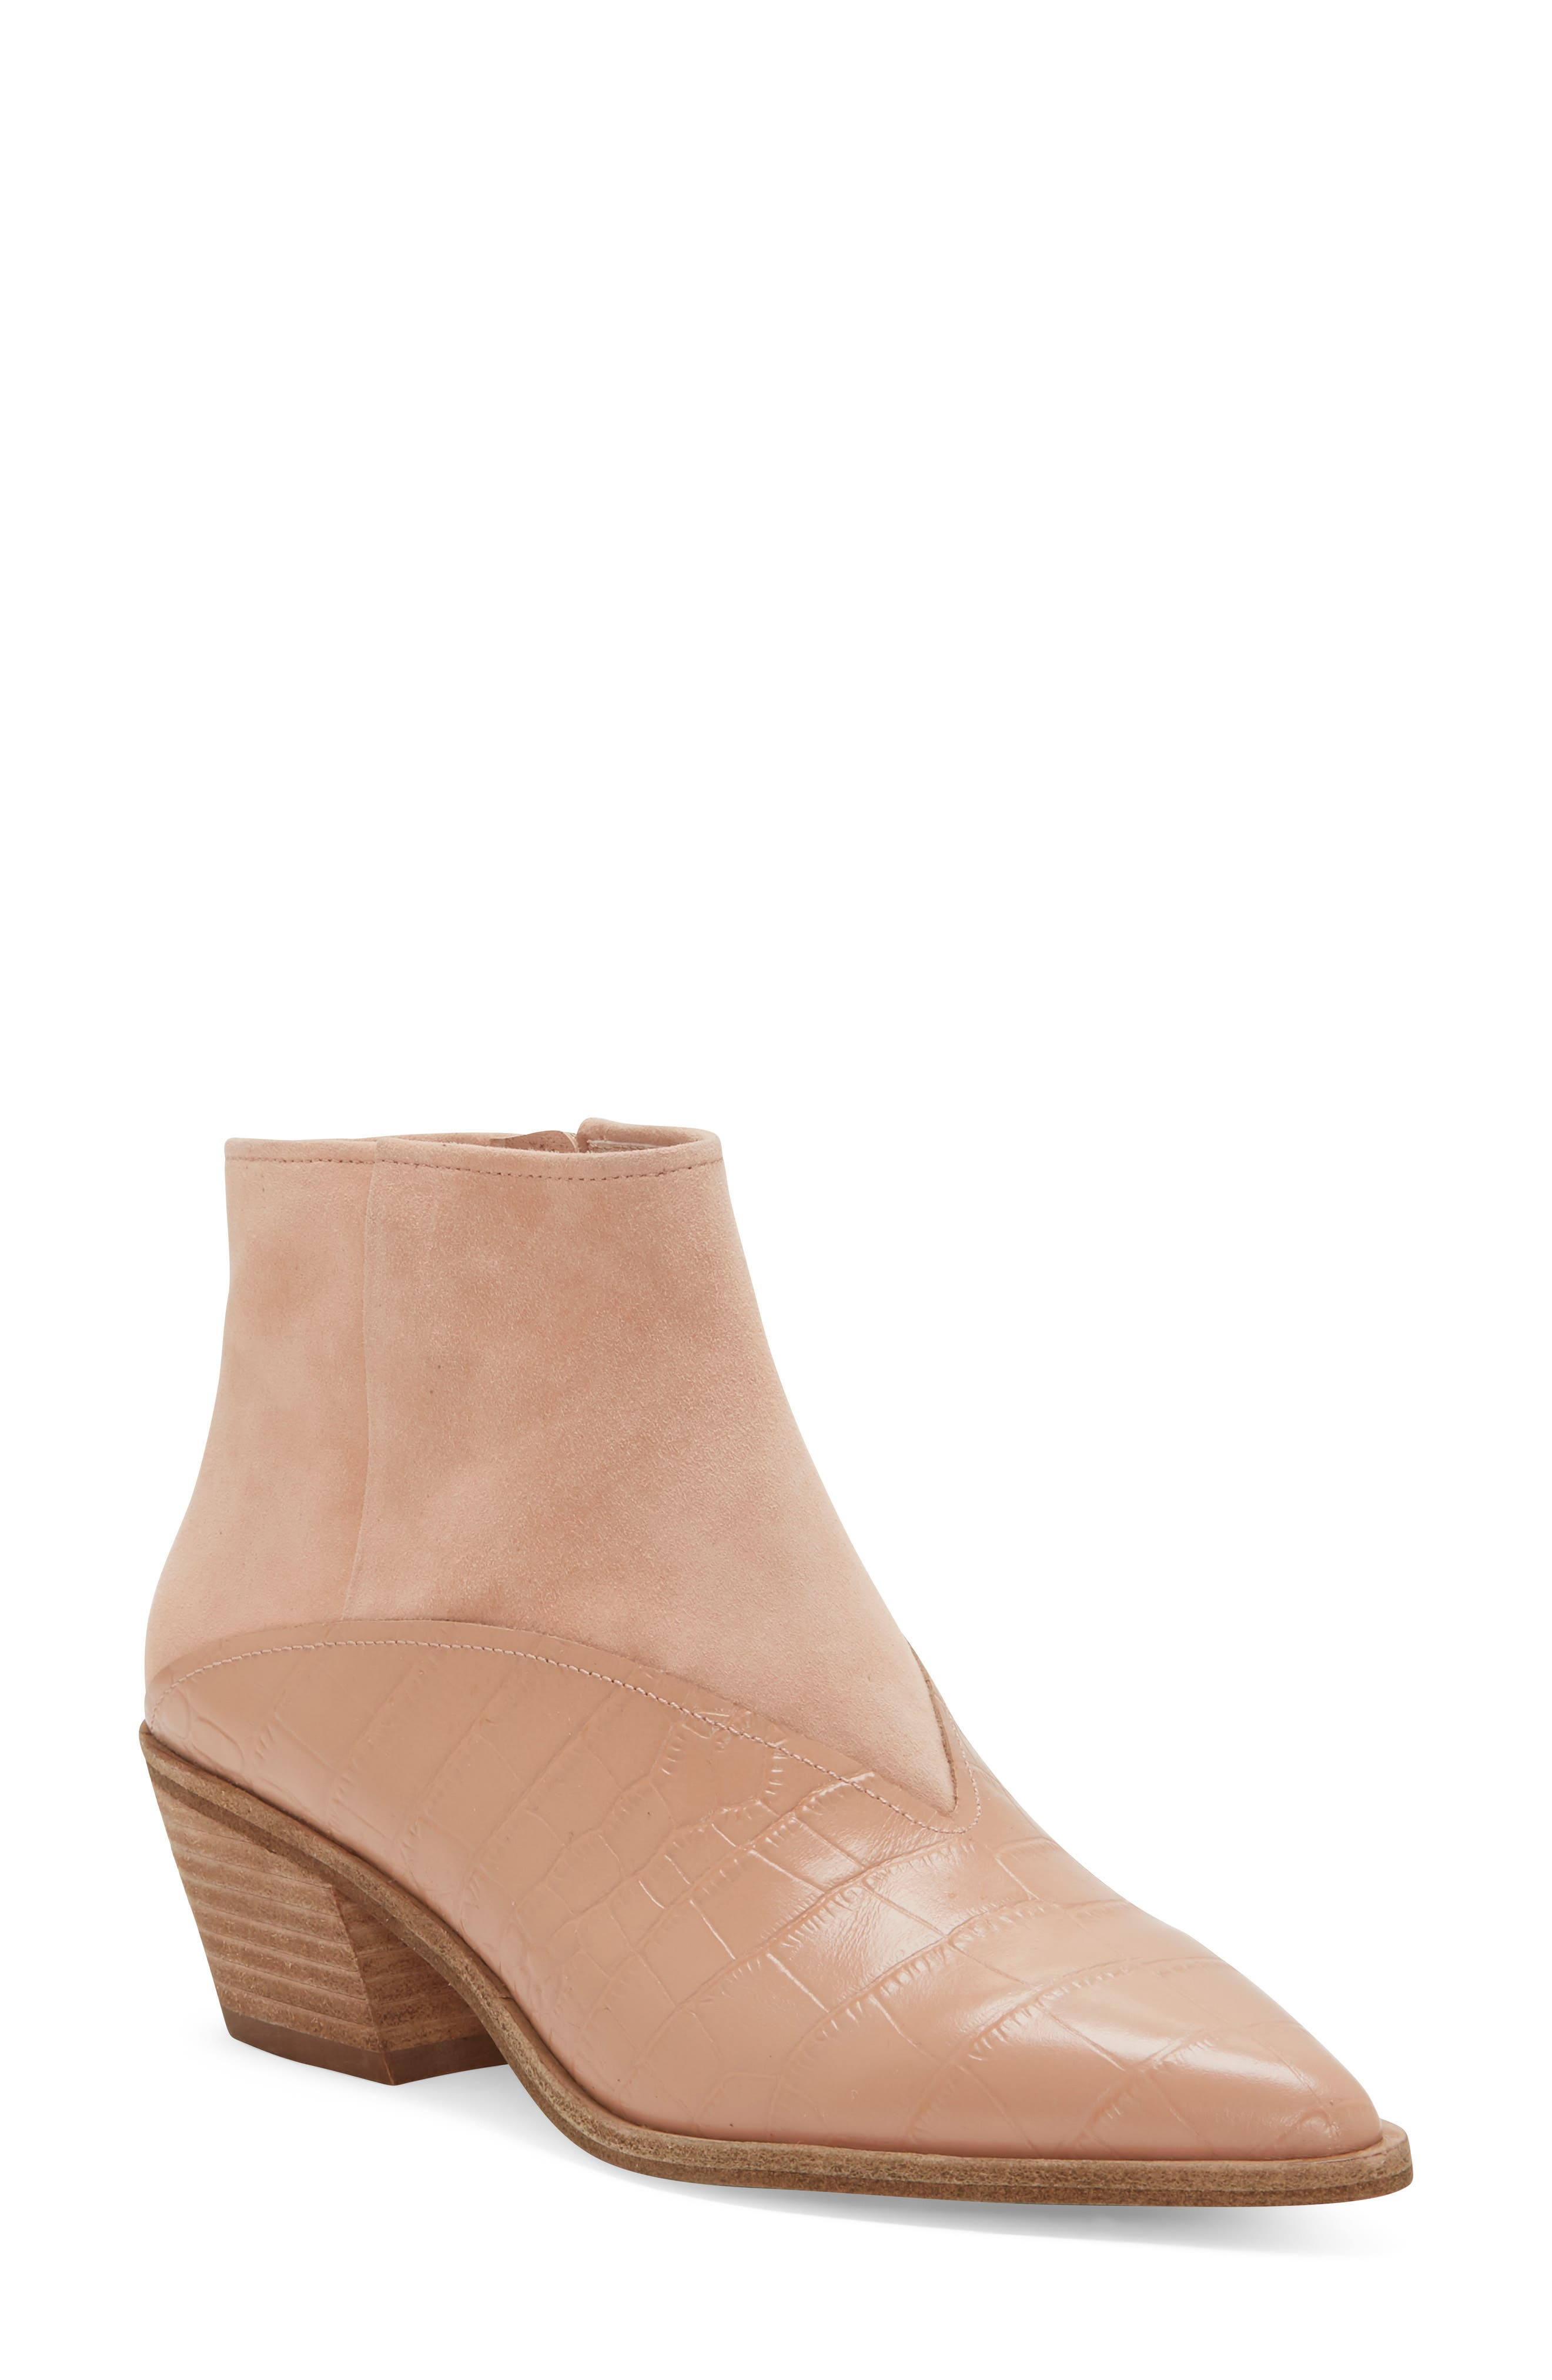 Image of Louise et Cie Vada Pointy Toe Bootie